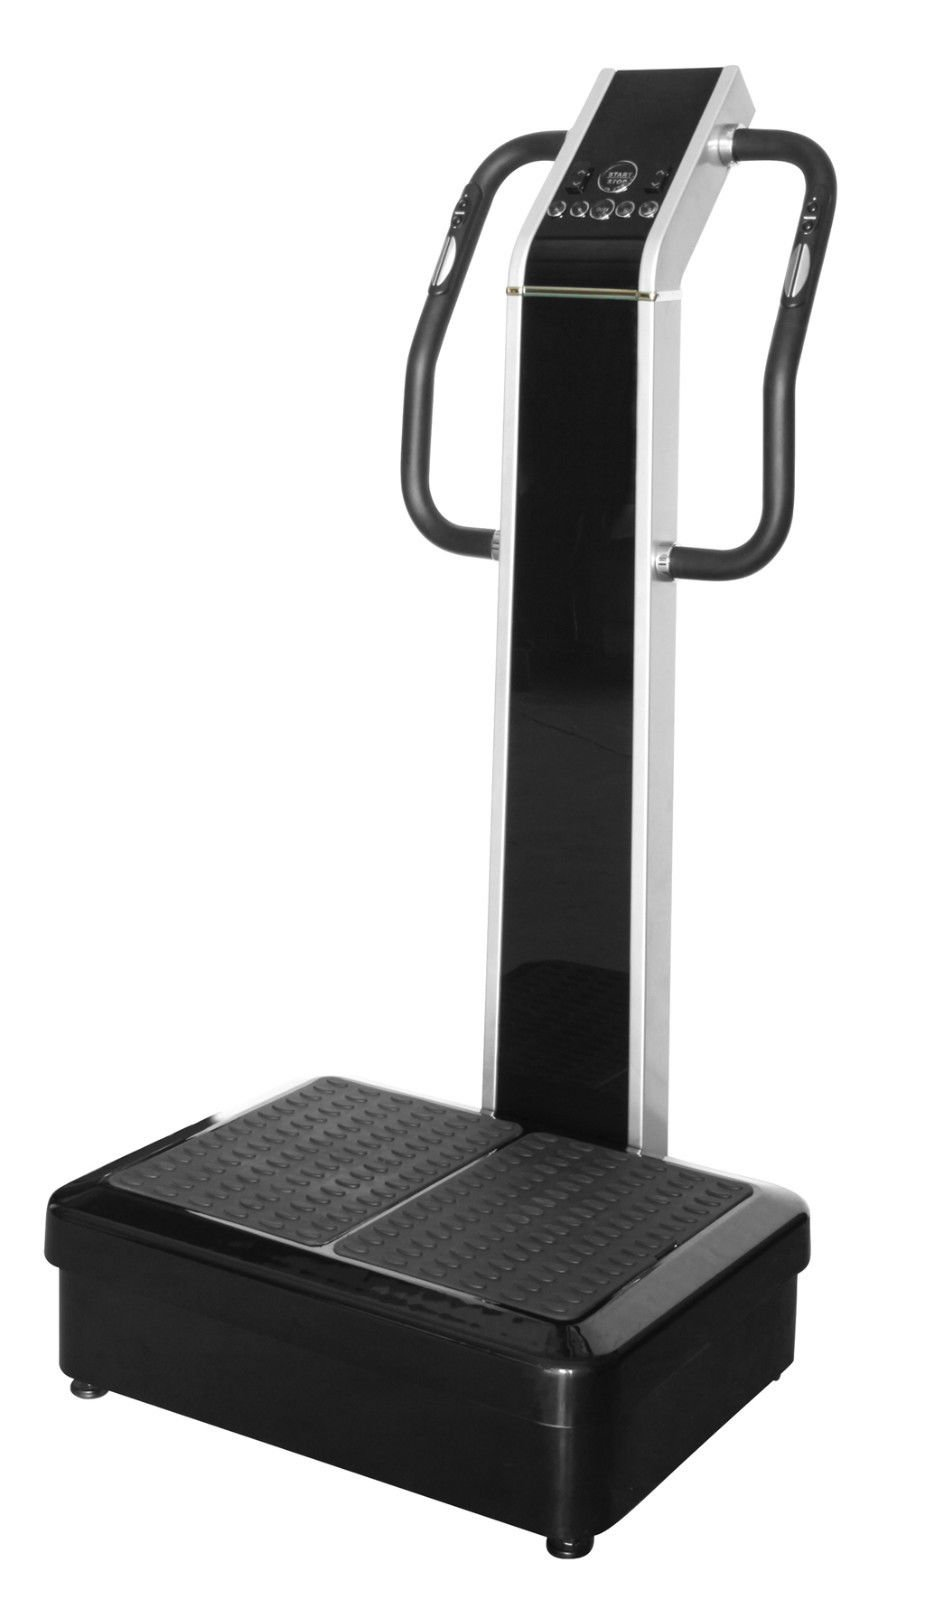 Whole Body Vibration Machine - Dual Motor by SDI : Commercial (2HP, 440 lbs), Dual Motor, Large Vibrating Platform, USB Programmable by SDS Fitness